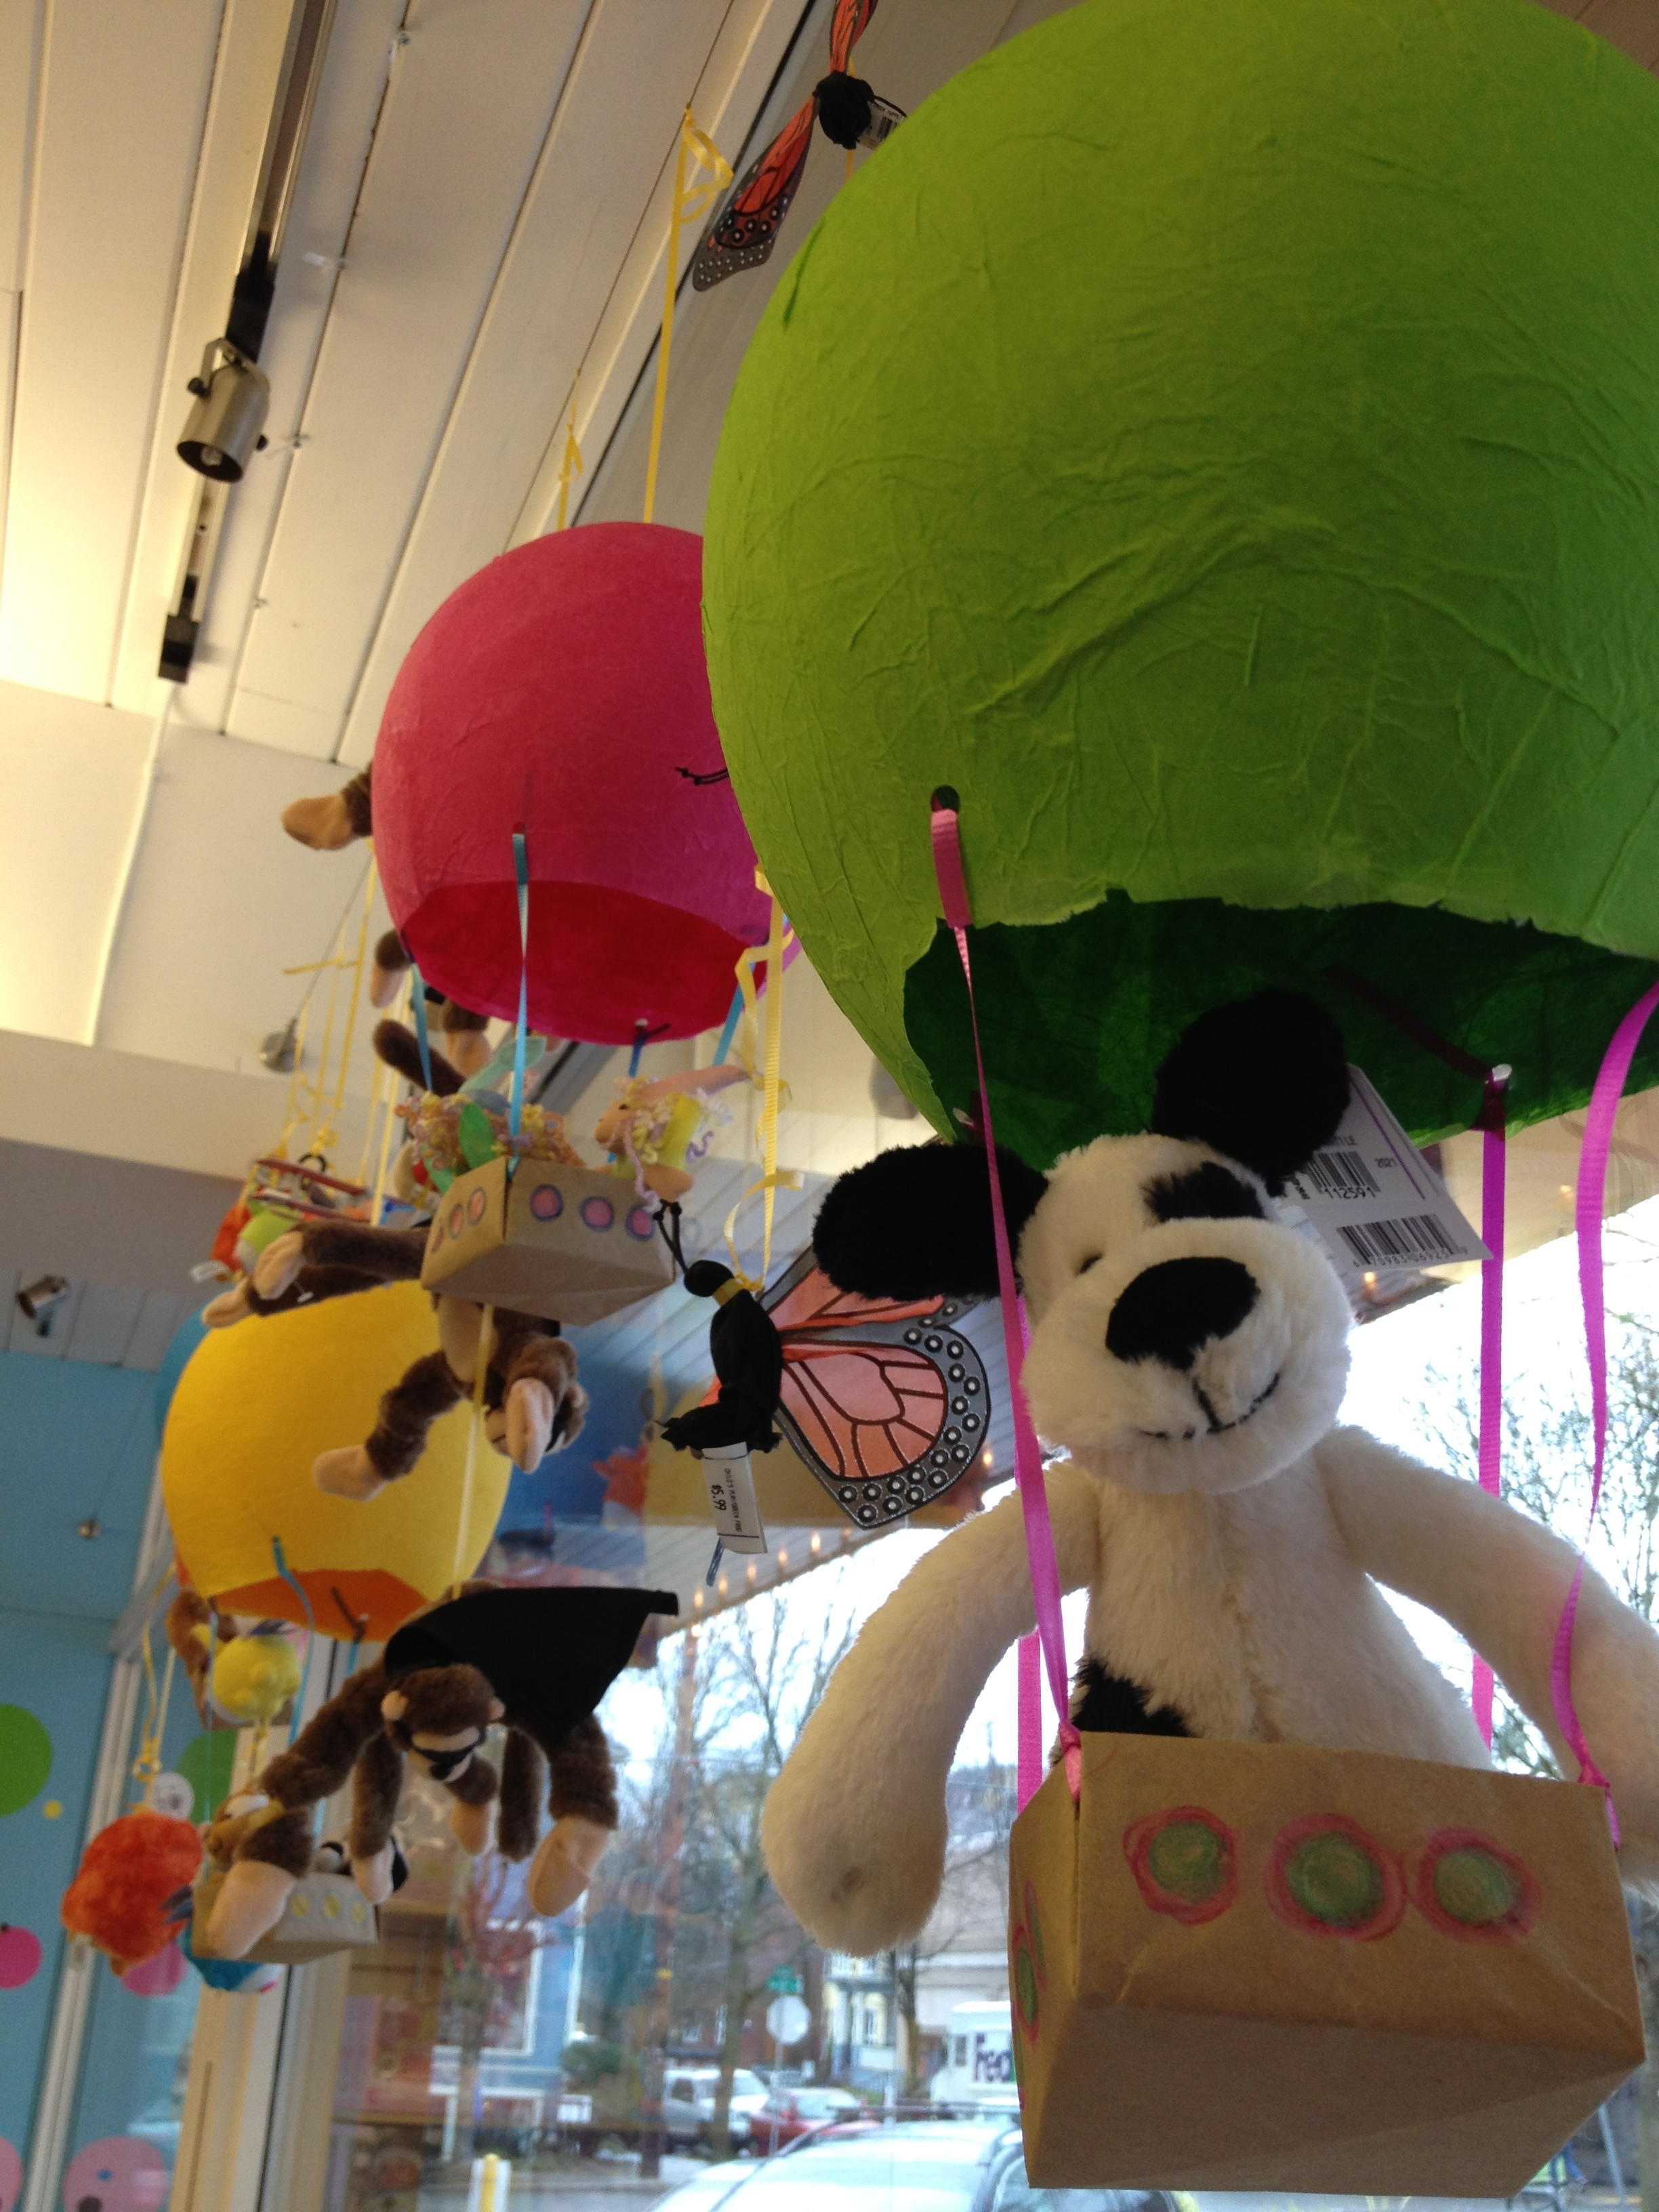 Toys_in_Portland_DIY_Balloon_Display_1